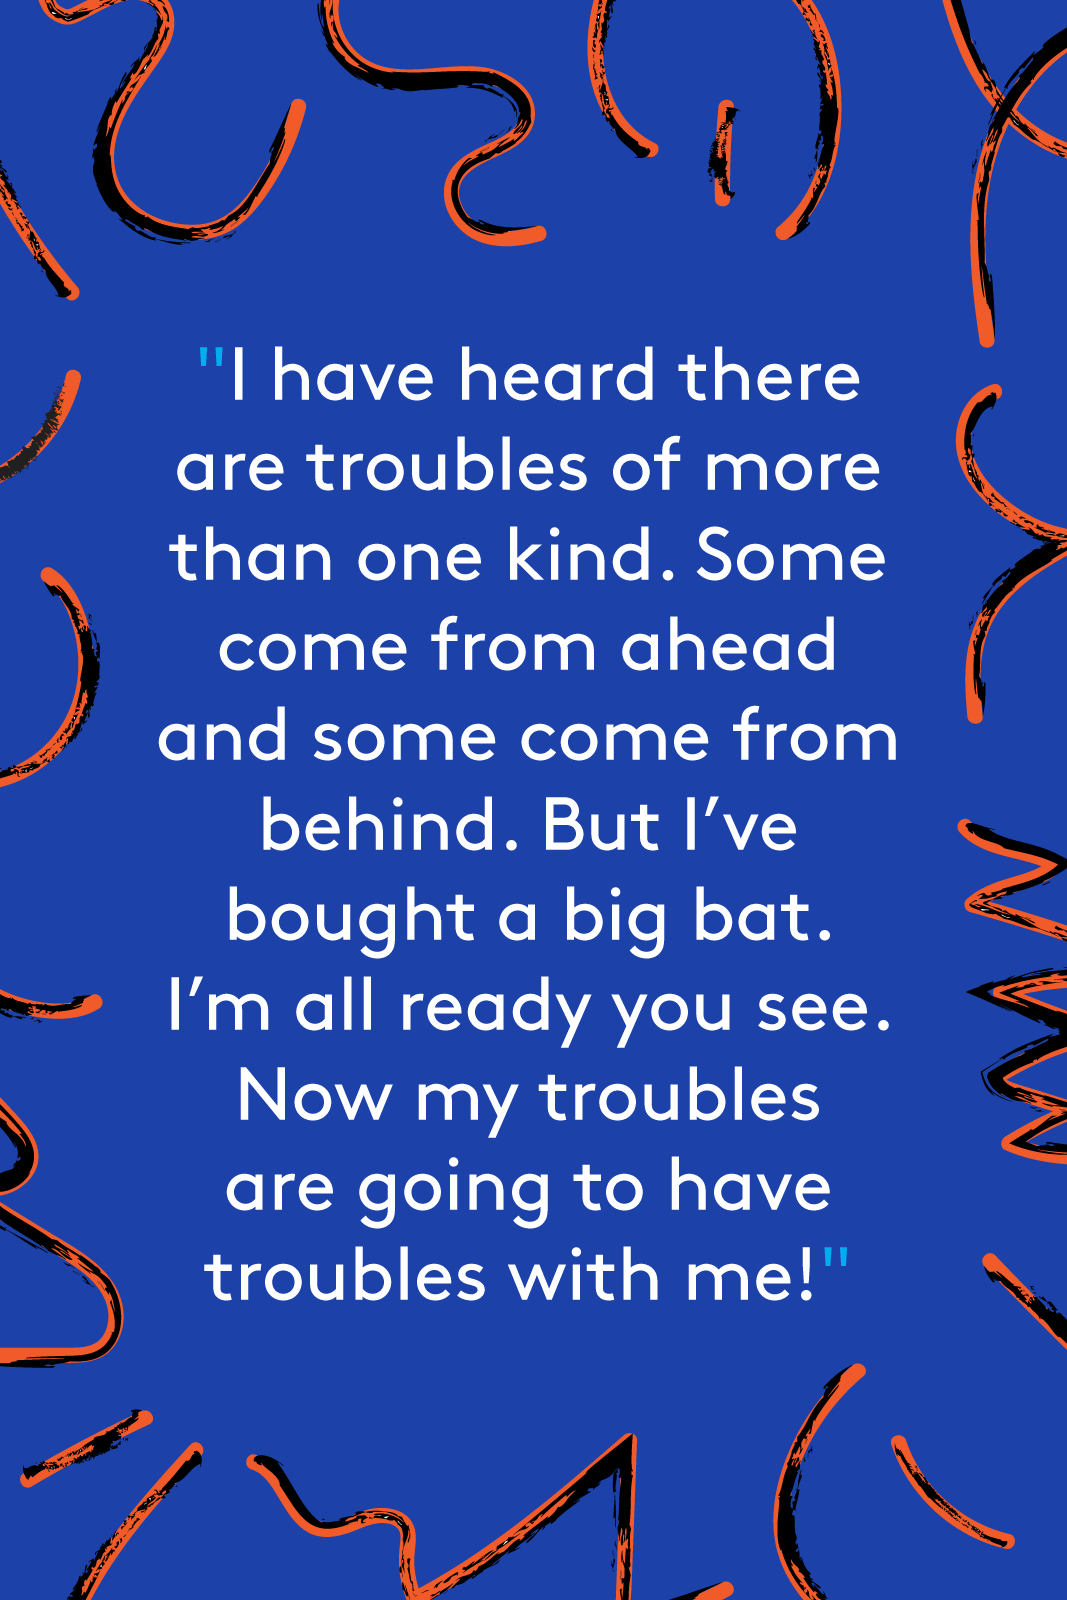 Dr Seuss Quotes For His Birthday